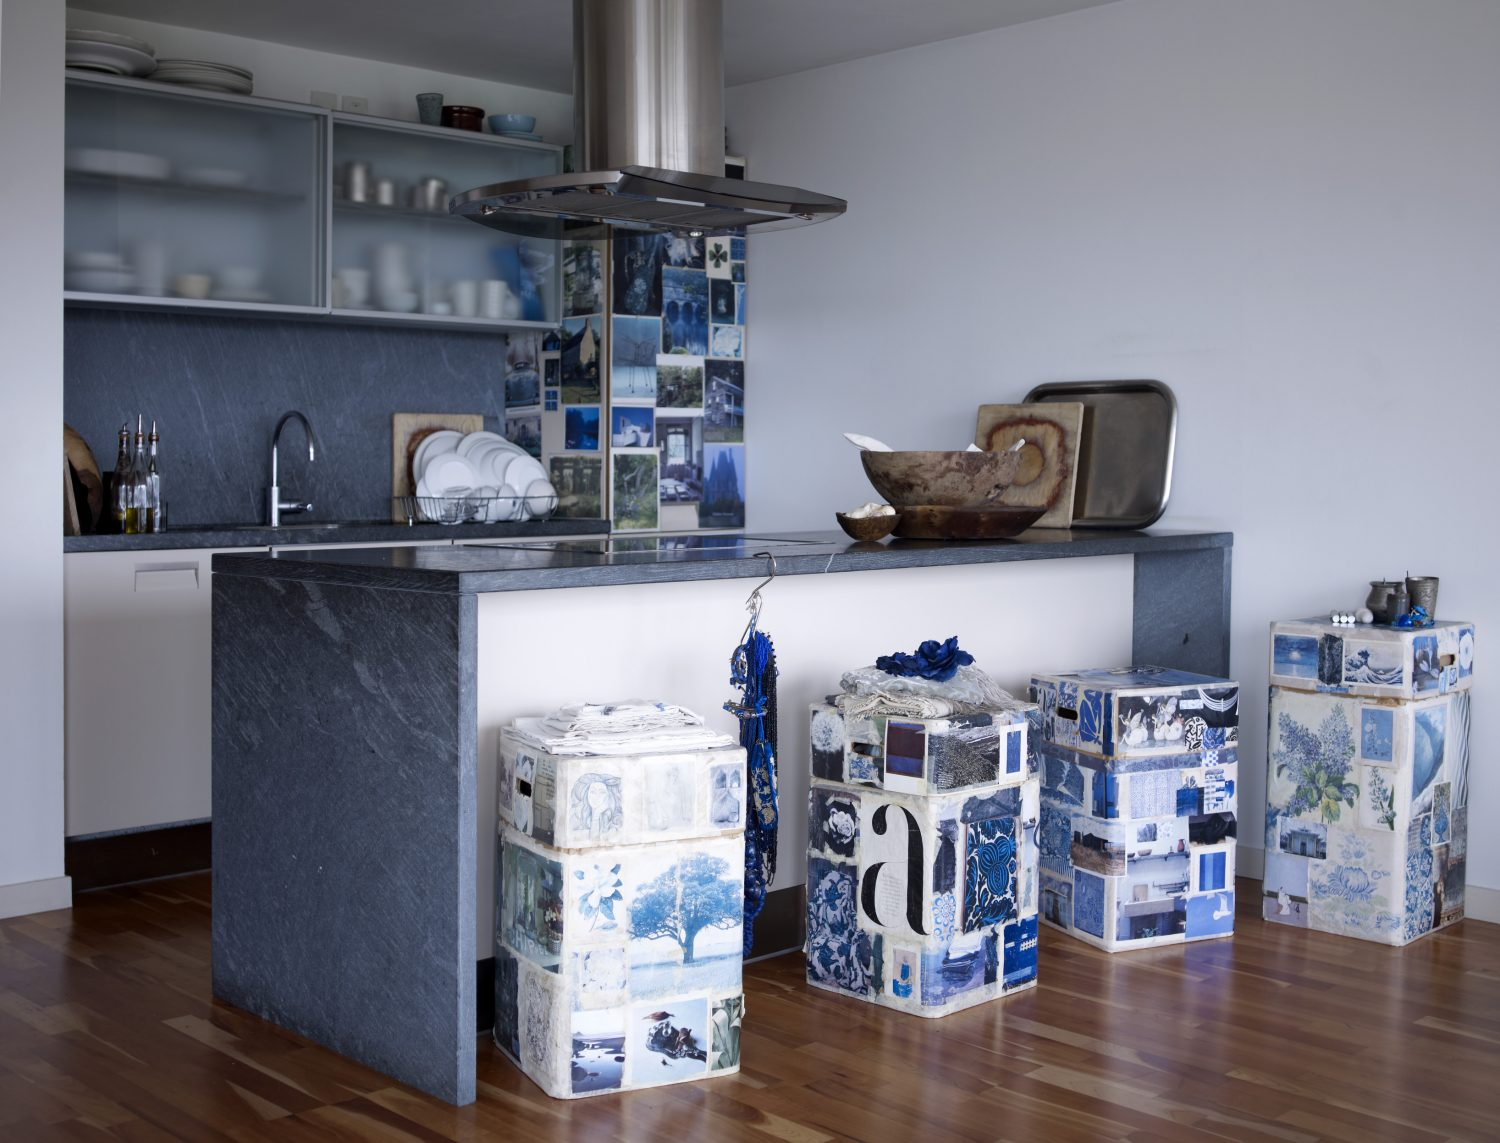 Blue & White: London based creative Ann Shore has put together a striking kitchen with her fresh, arresting palette of white and blue. She has used small pieces of masking tape to cover the fridge in a montage of blue and white images, including old magazine spreads, postcards and printed photos from around the world. Carrying on this theme, Ann has papered her breakfast bar stools – made from tall cardboard storage boxes – in recommissioned pages from books and magazines, to create a patchwork of memory and nostaglia. Her granite worktop on the cooking island carries on the theme, juxtaposed with crisp white cupboards. Wooden bowls and chopping boards bring in a sense of nature, like pieces of driftwood on a seashore, and contrast with the modern, polished-aluminium extractor hood.